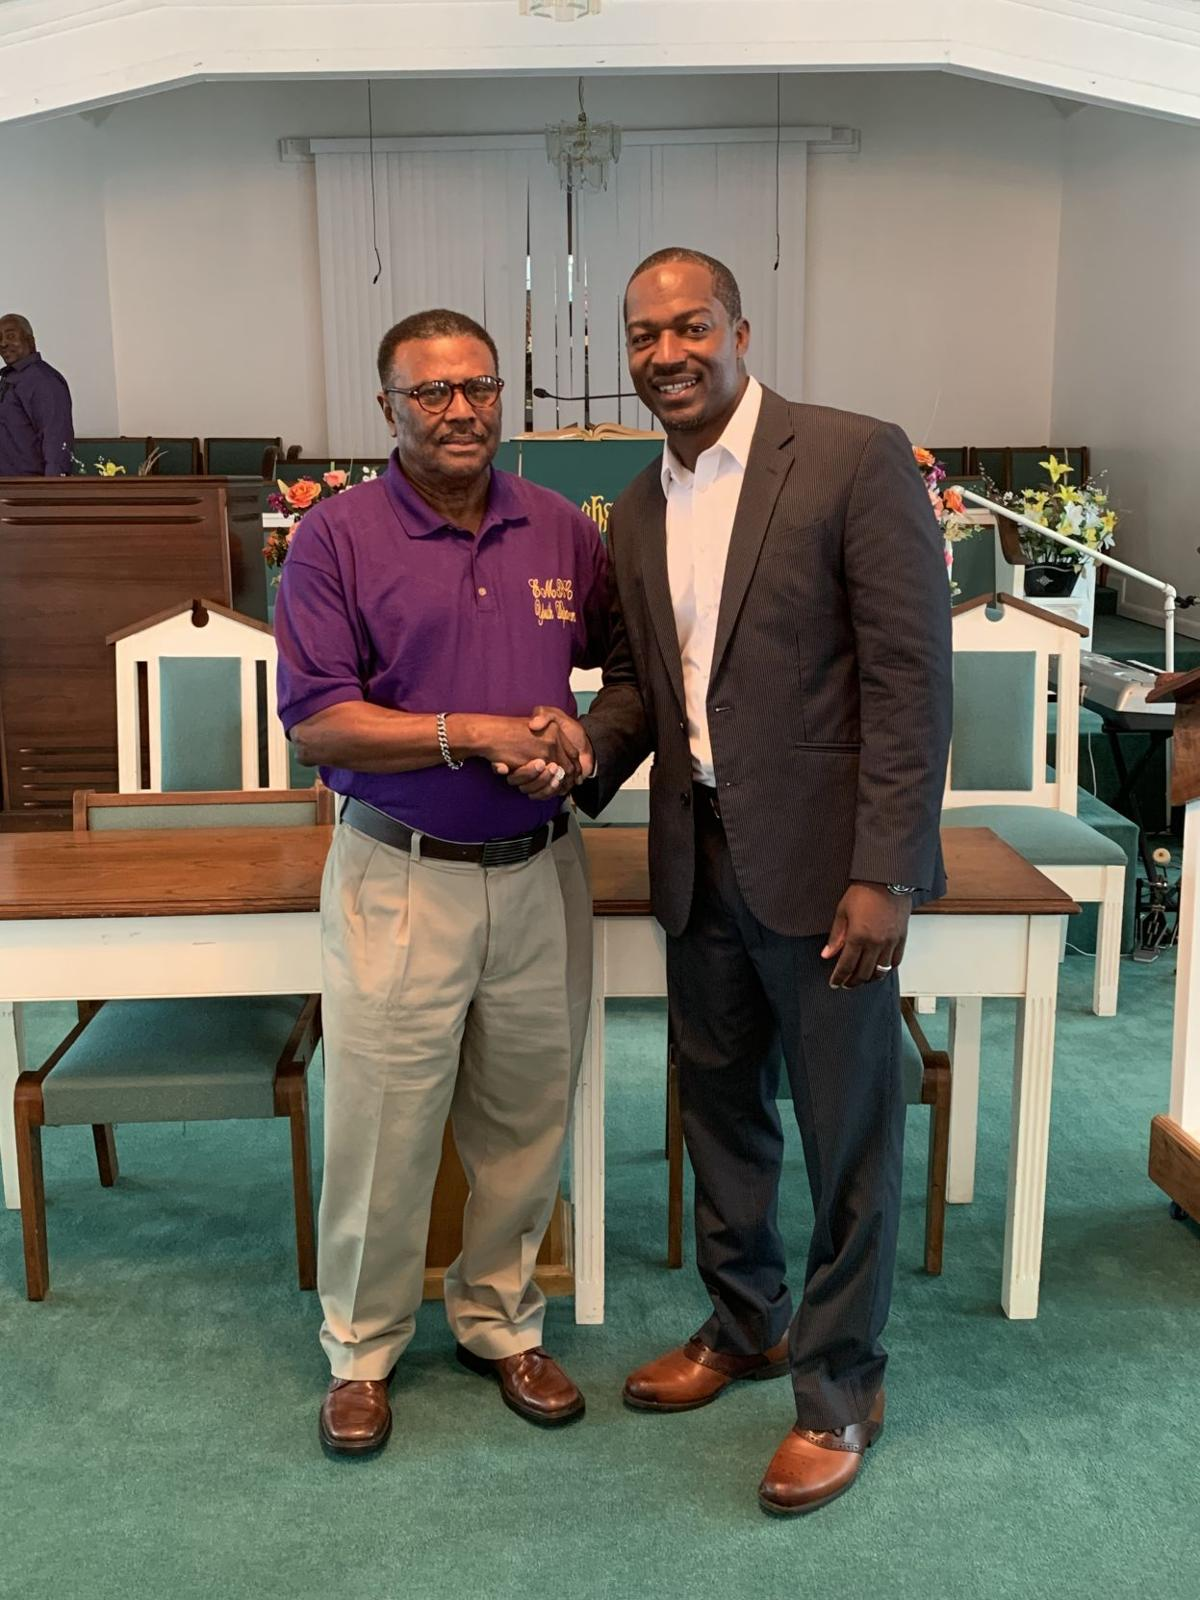 Pastor Hawthorne Reed and Min. Willie Spears